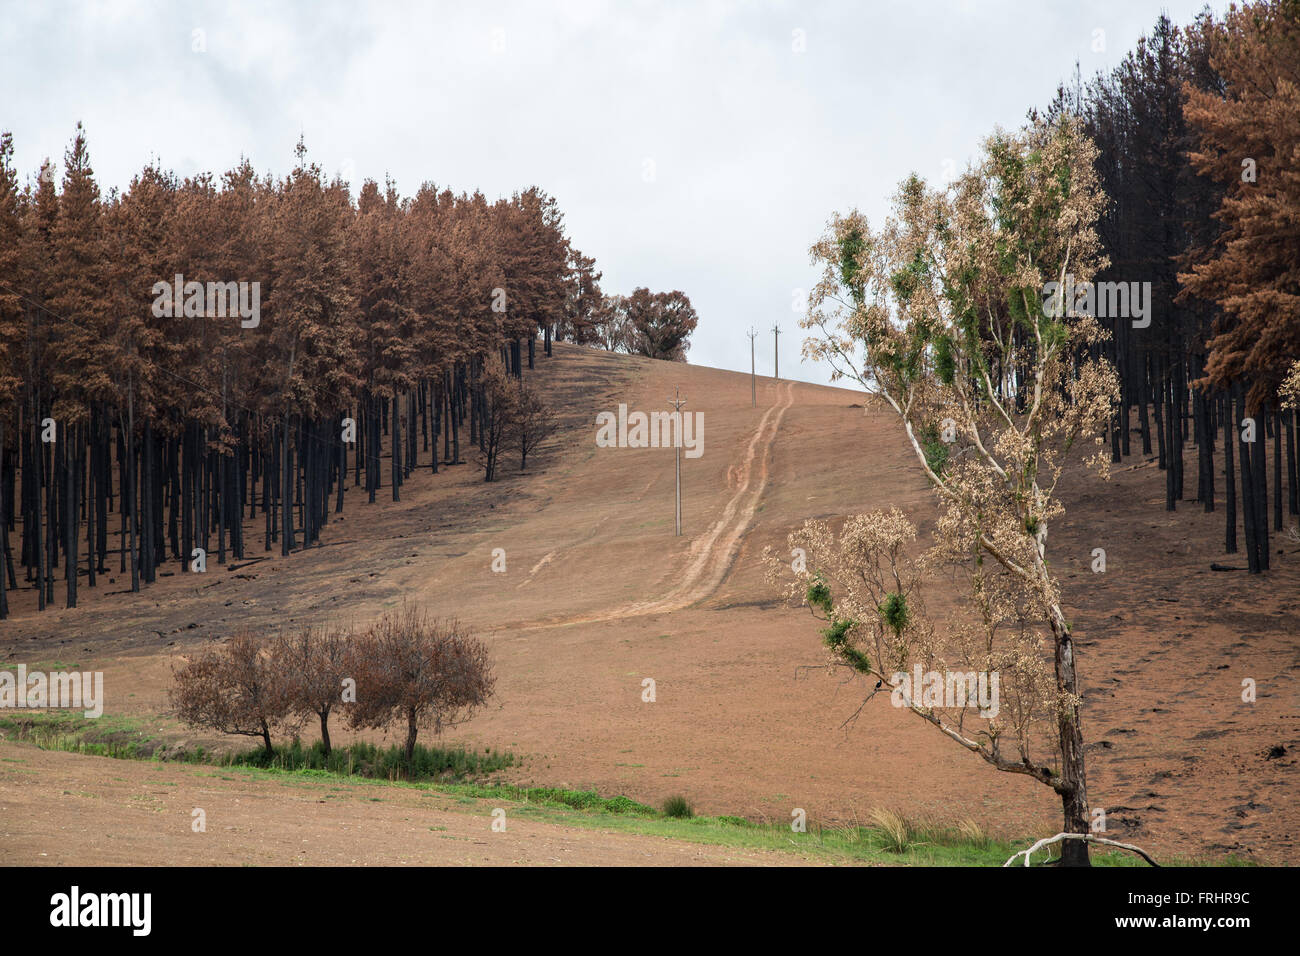 hill slope after forest fire with burnt conifers , aisle for power line, country road, strip of fresh grass below, - Stock Image